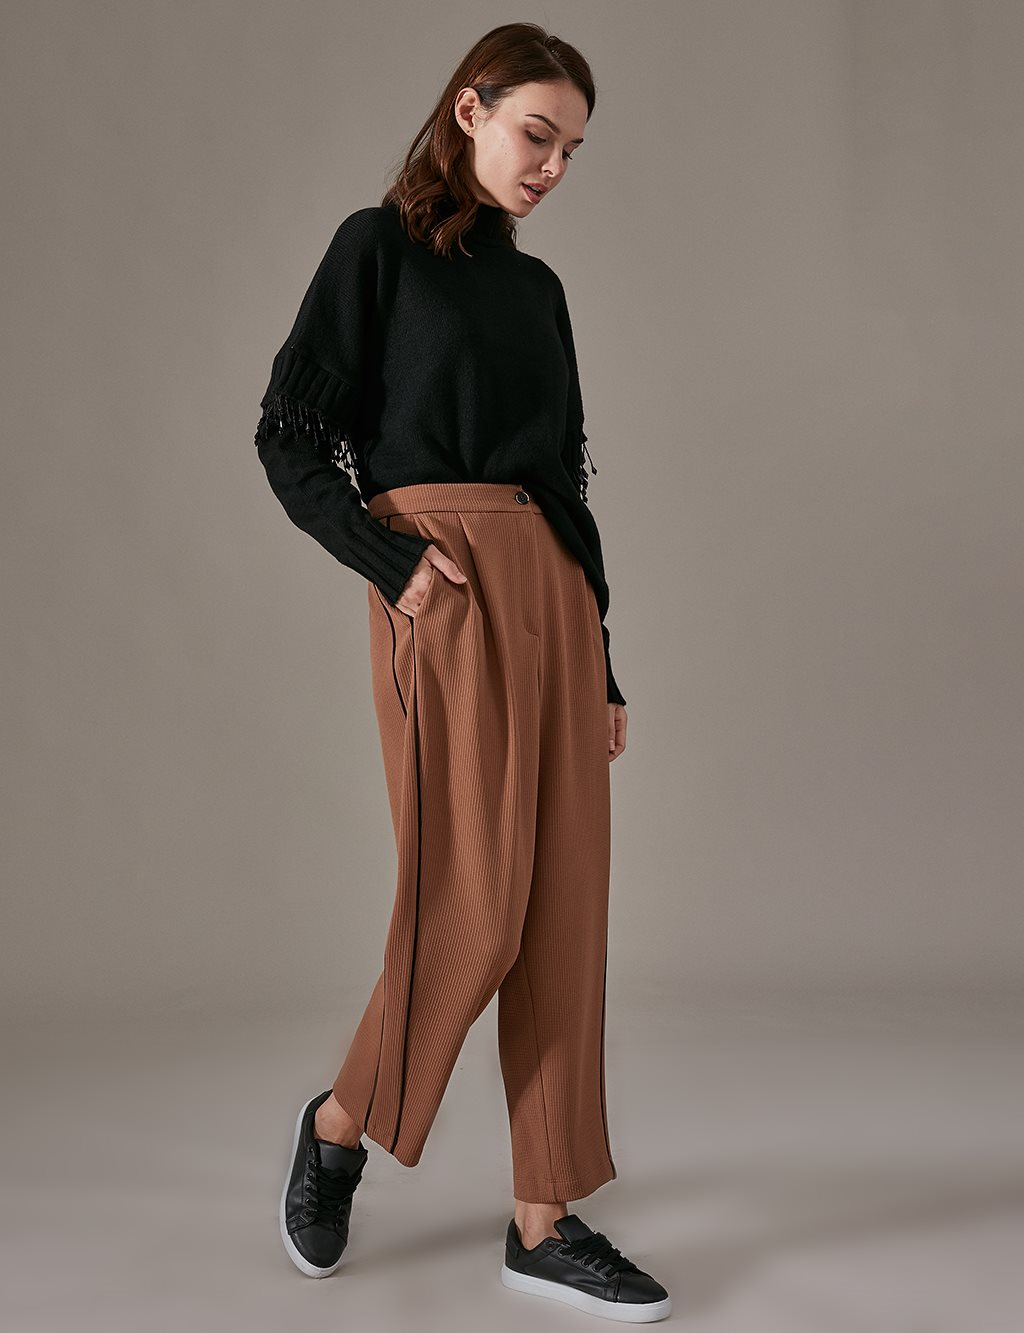 KYR Strappy Pants A9 79020 Camel